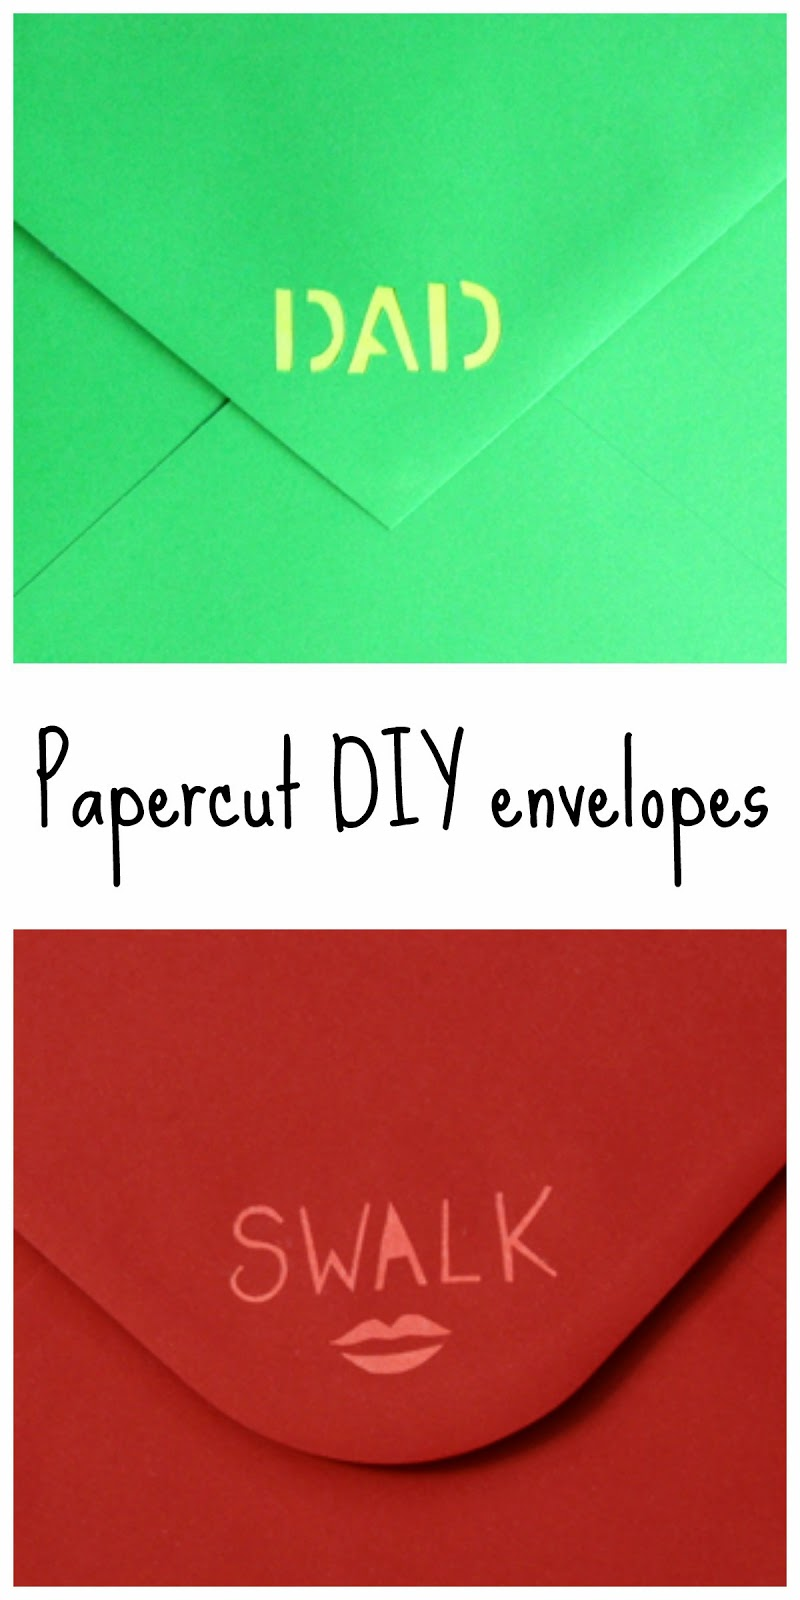 Simple papercuts to make envelopes more special